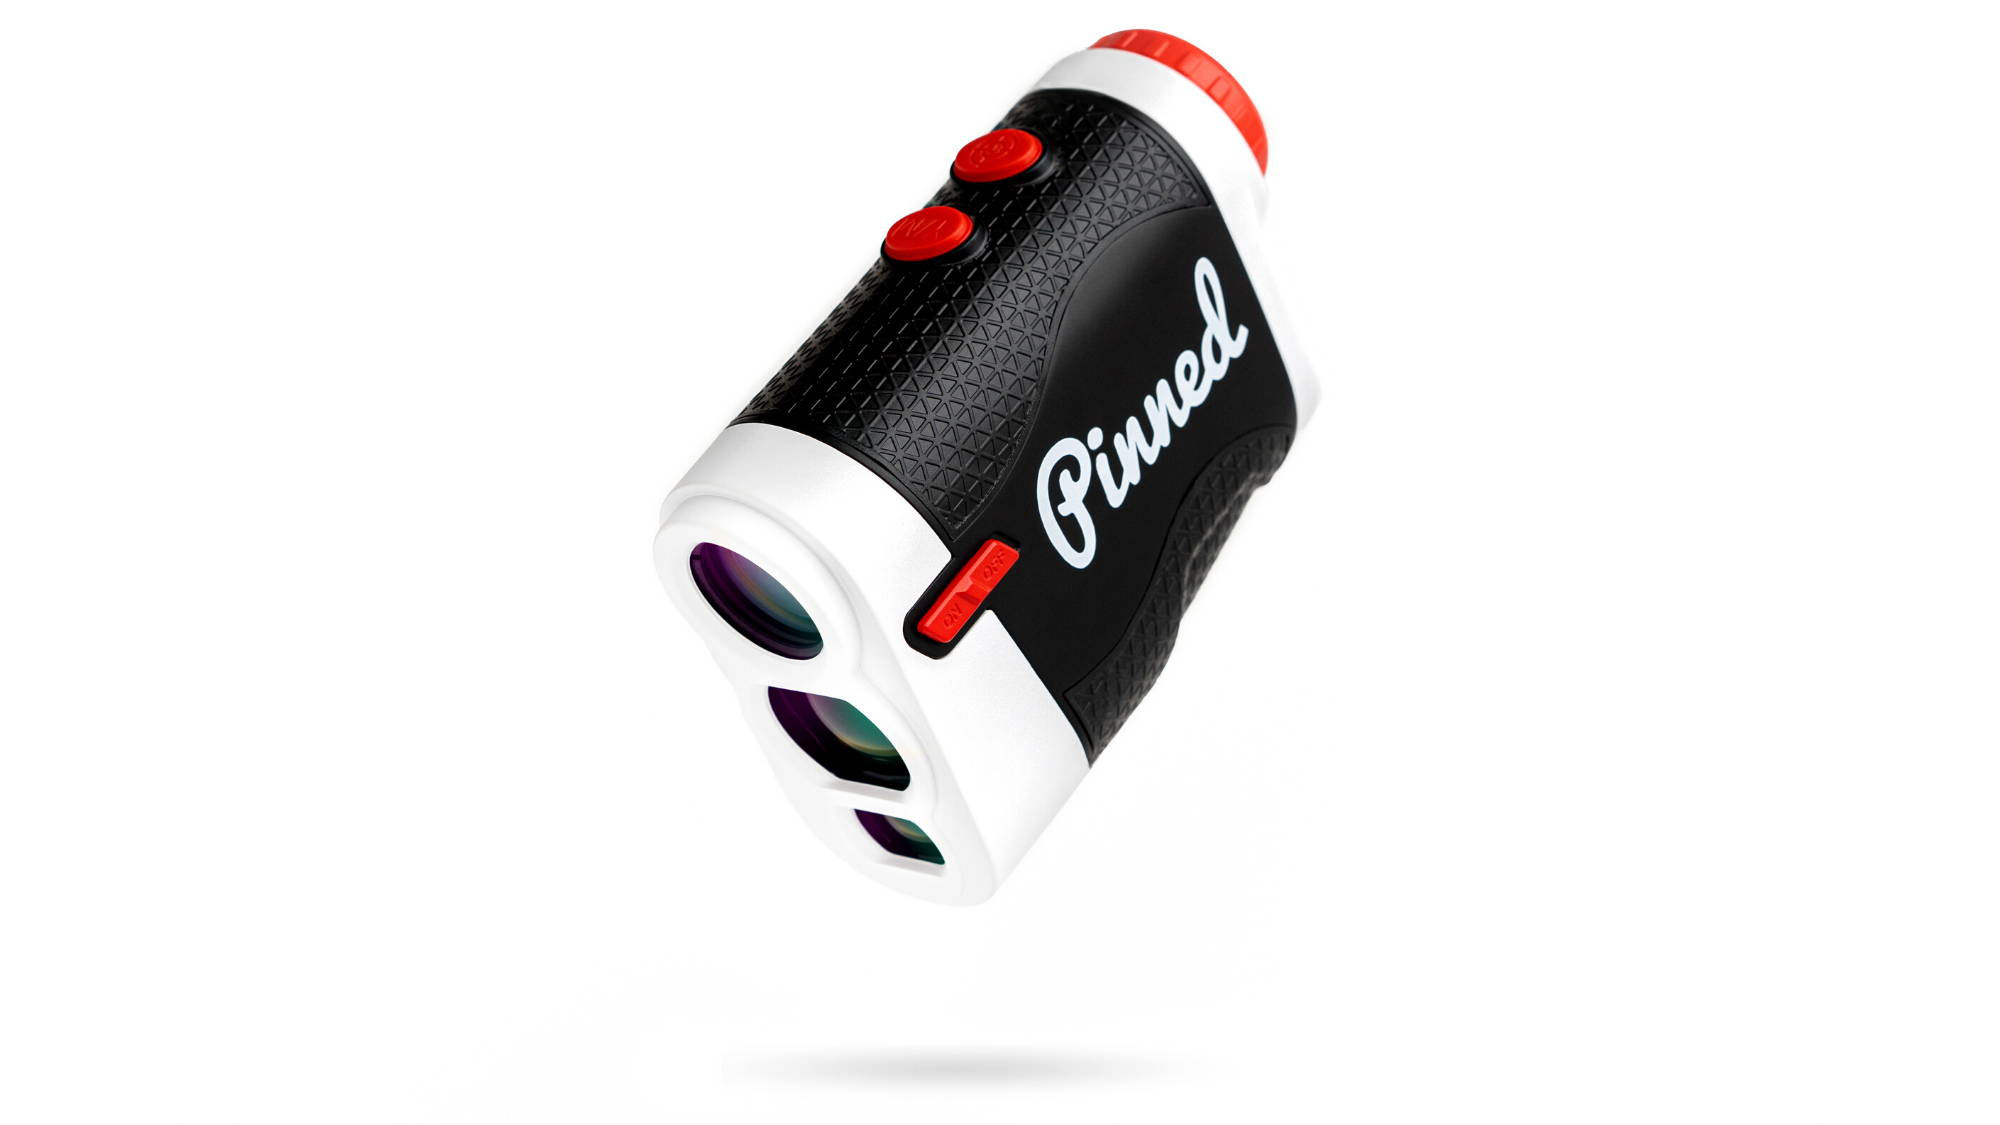 Brand new affordable golf rangefinder. Trusted by professional golfers, it offers all the features you would need and more.